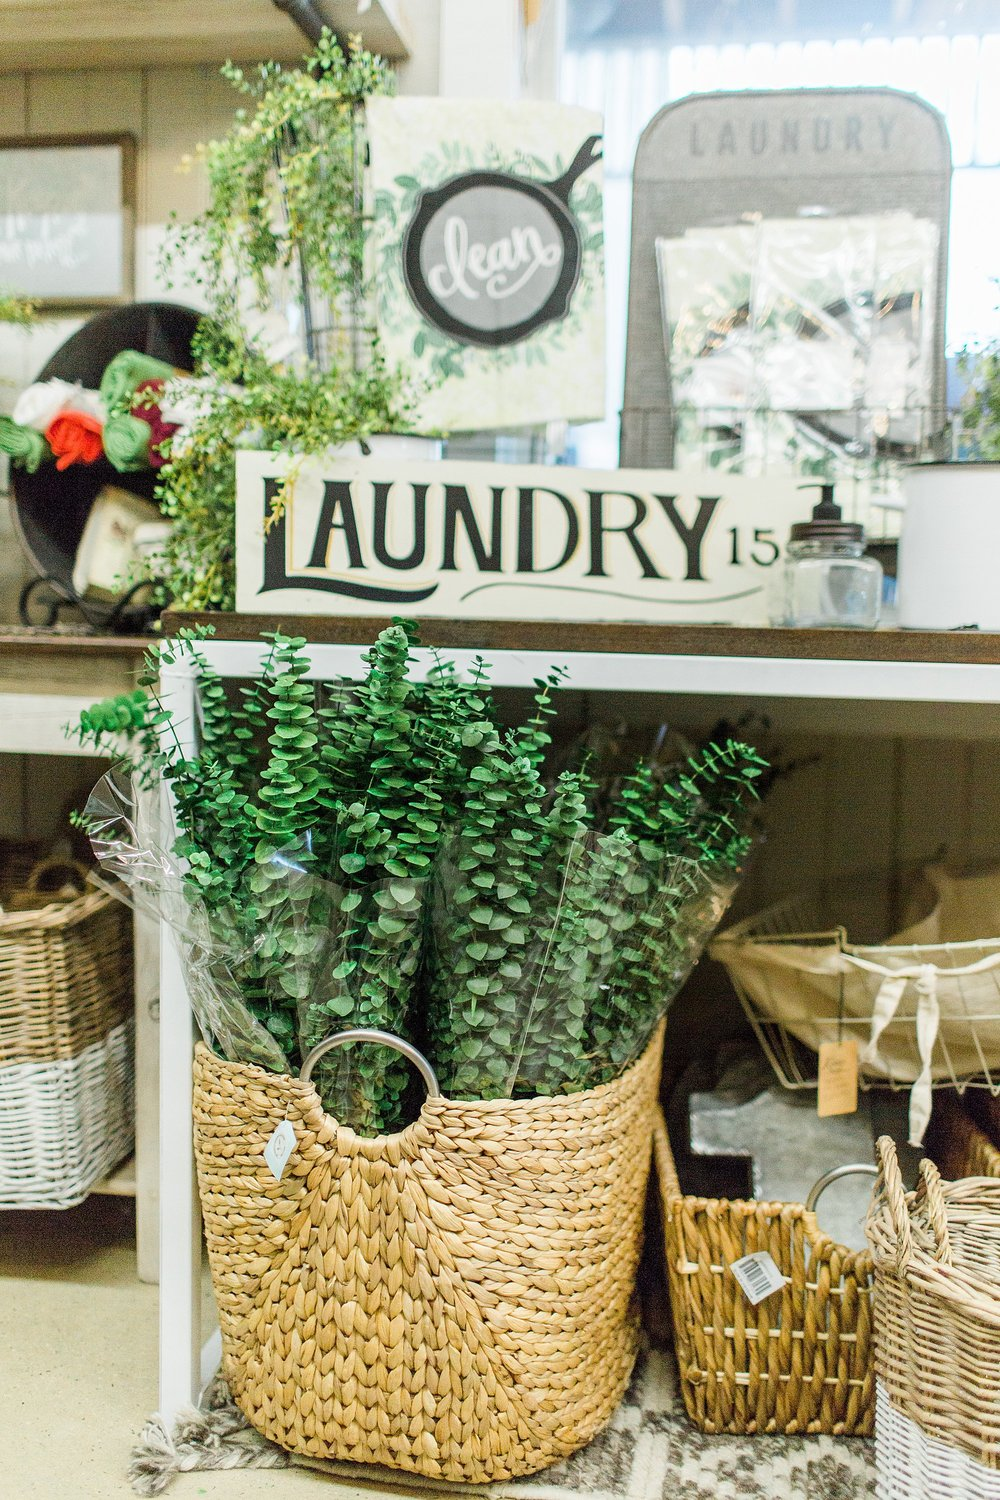 Did you know the Homestead stocked three kinds of real eucalyptus this year? Also real dried lavender!